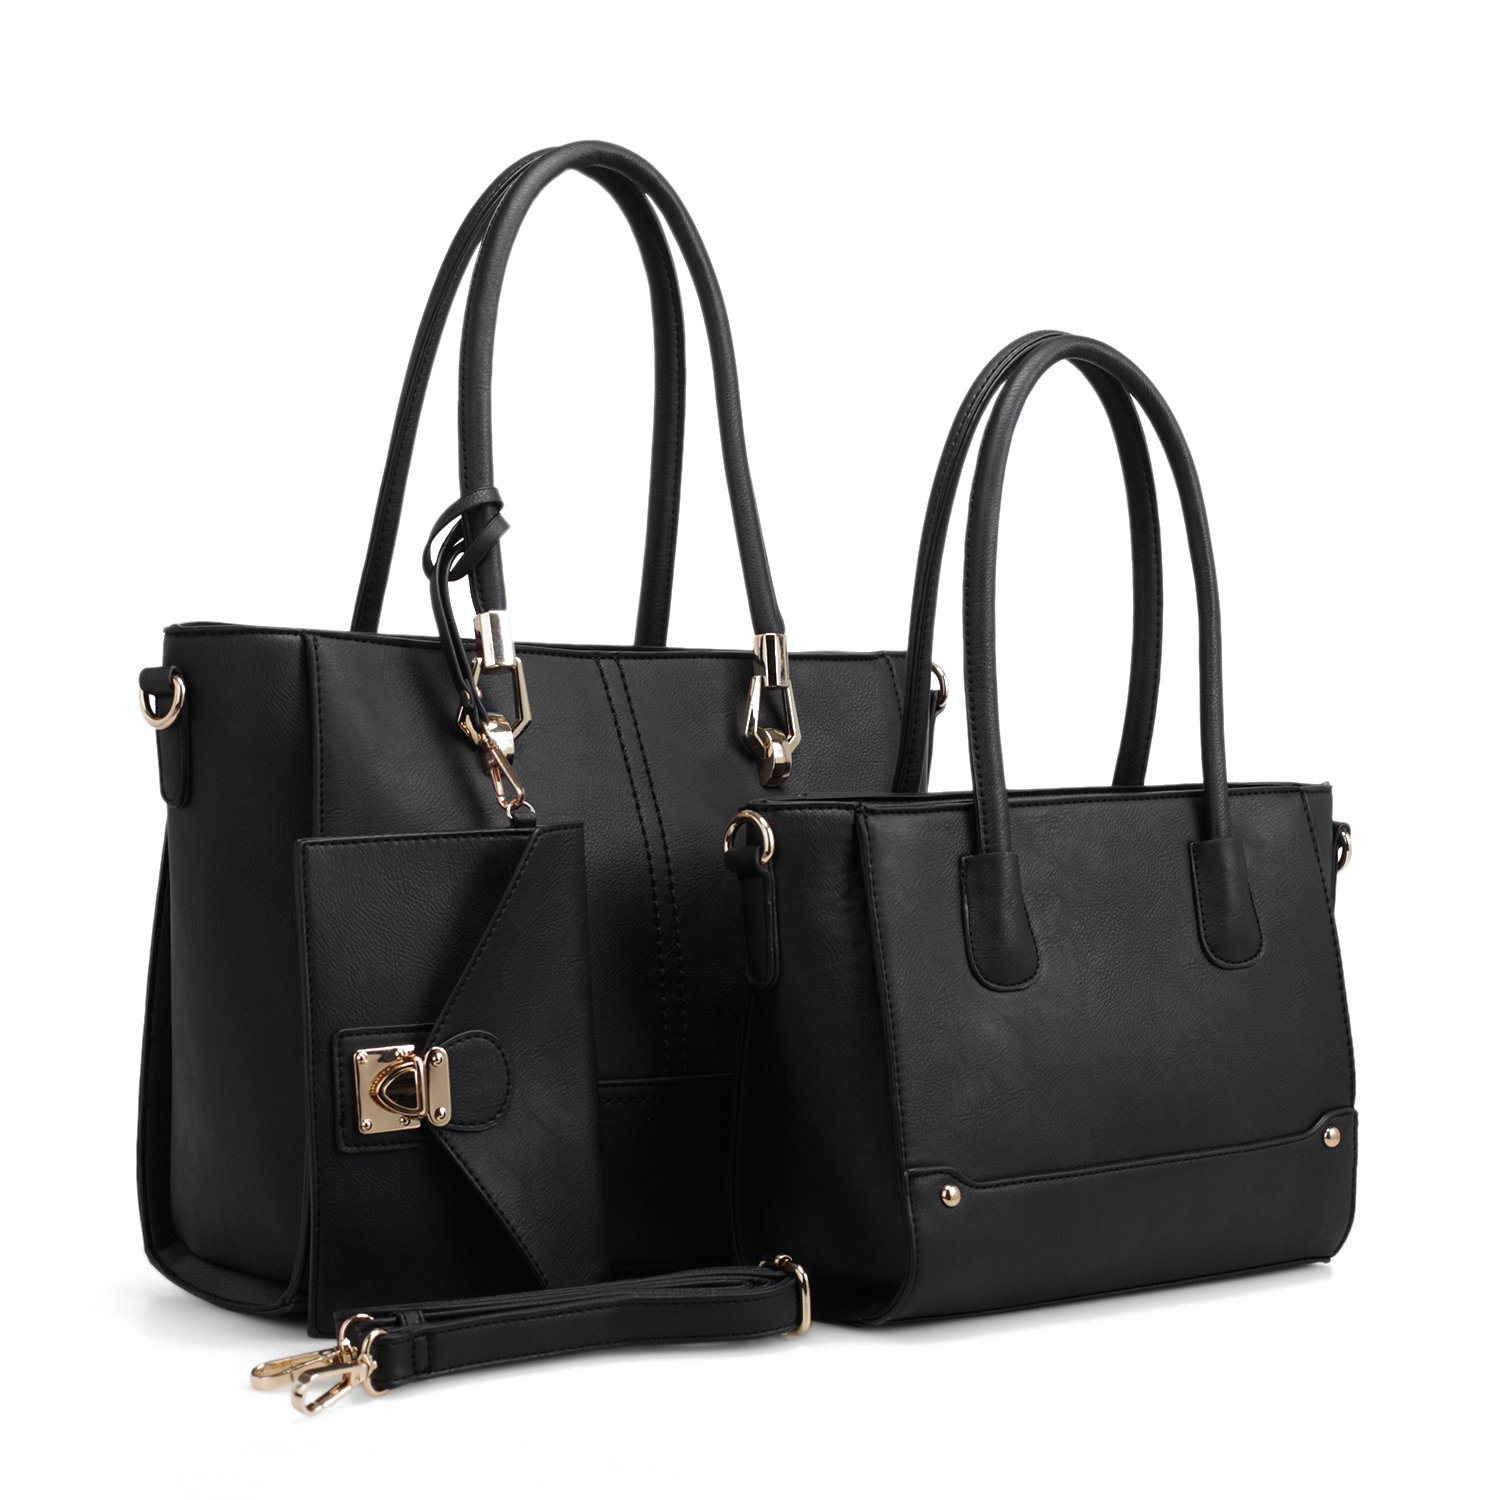 9cade12b6c149 Amazon.com: Women Handbag Set 3 Pieces Bags Real Leather Tote Small Shoulder  Purse Bags Wallet Strap: Shoes